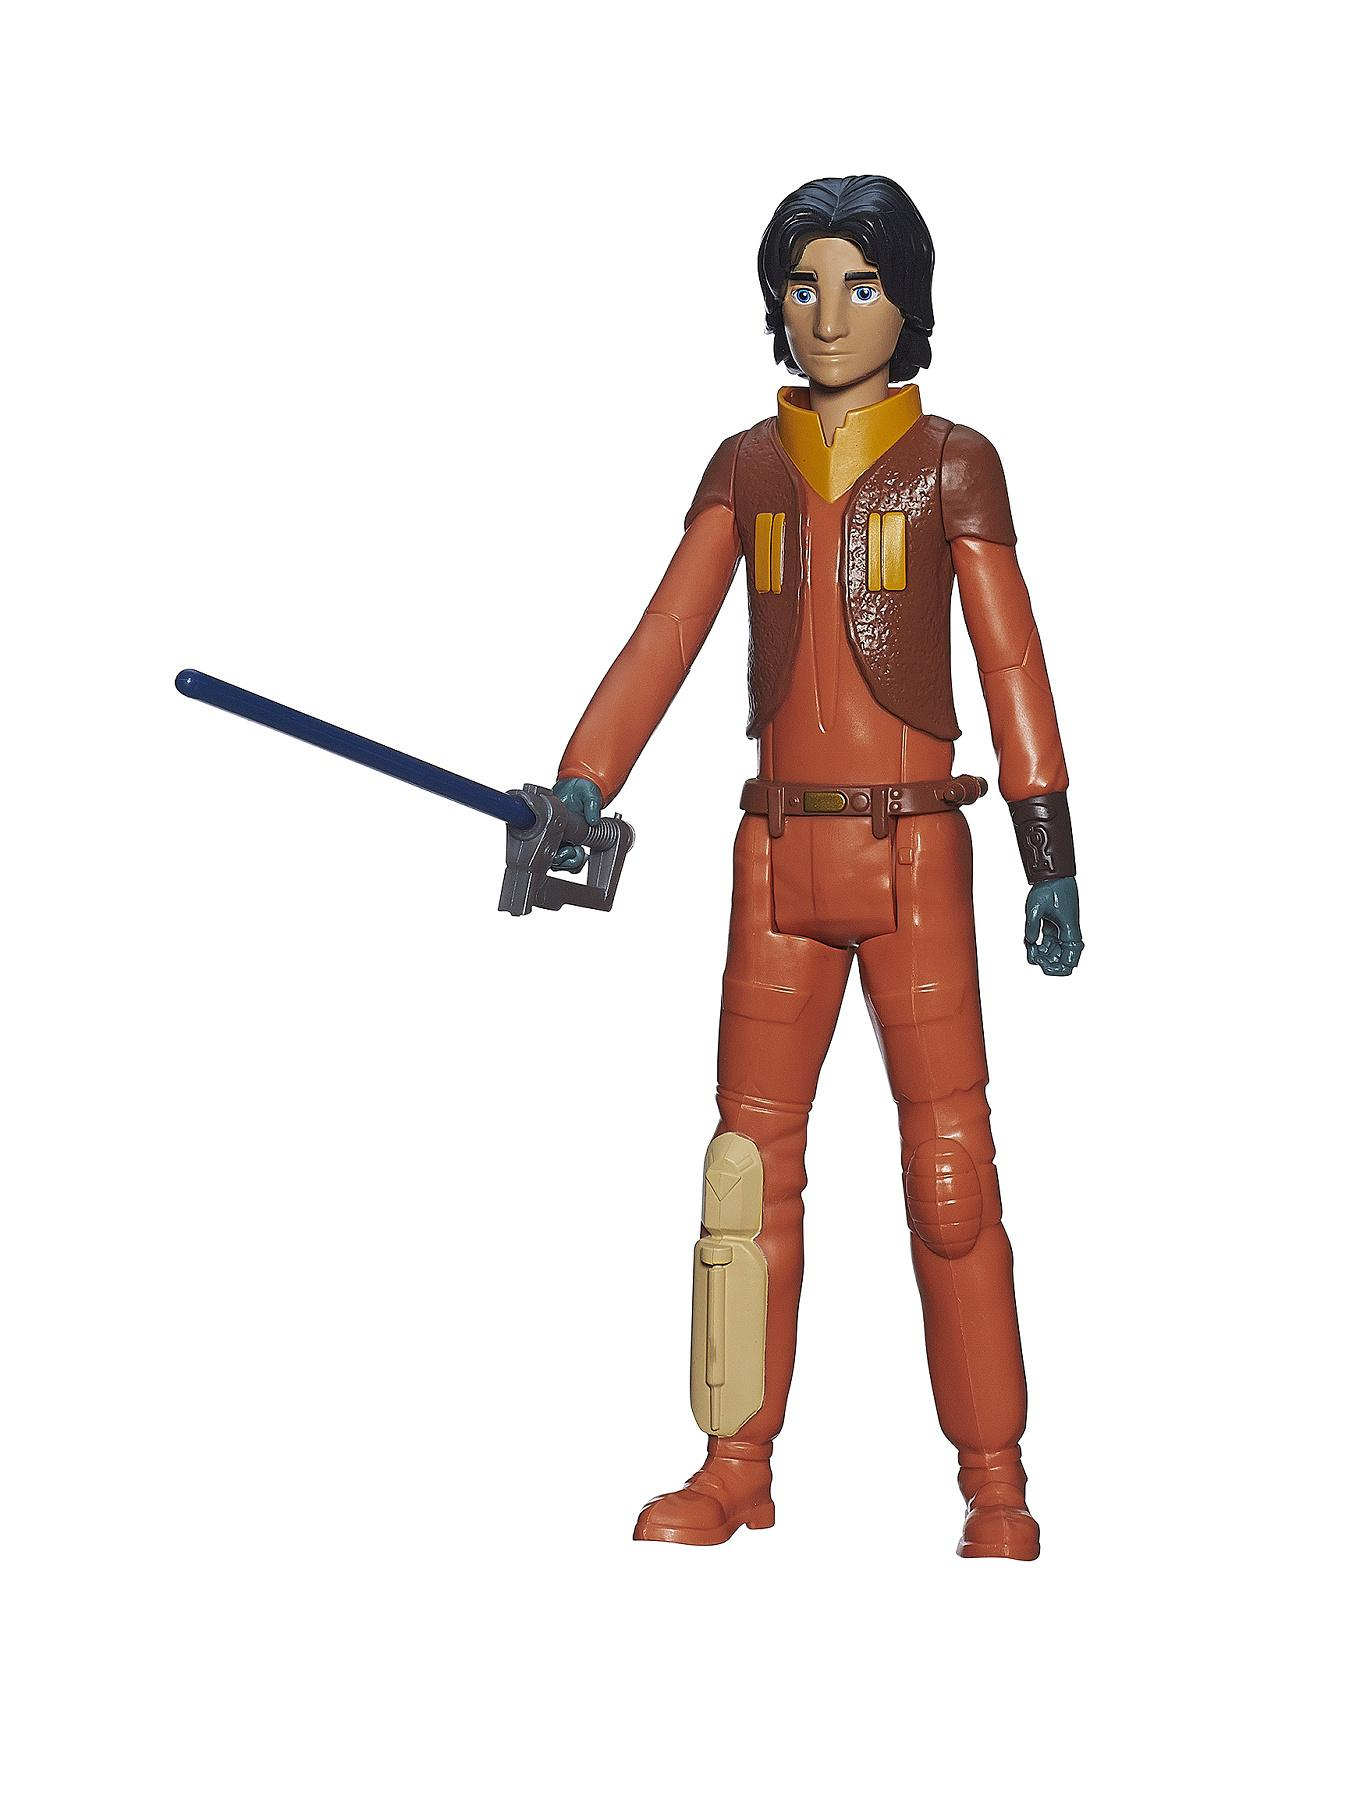 Star Wars 12 Inch Action Figure - Ezra Bridger